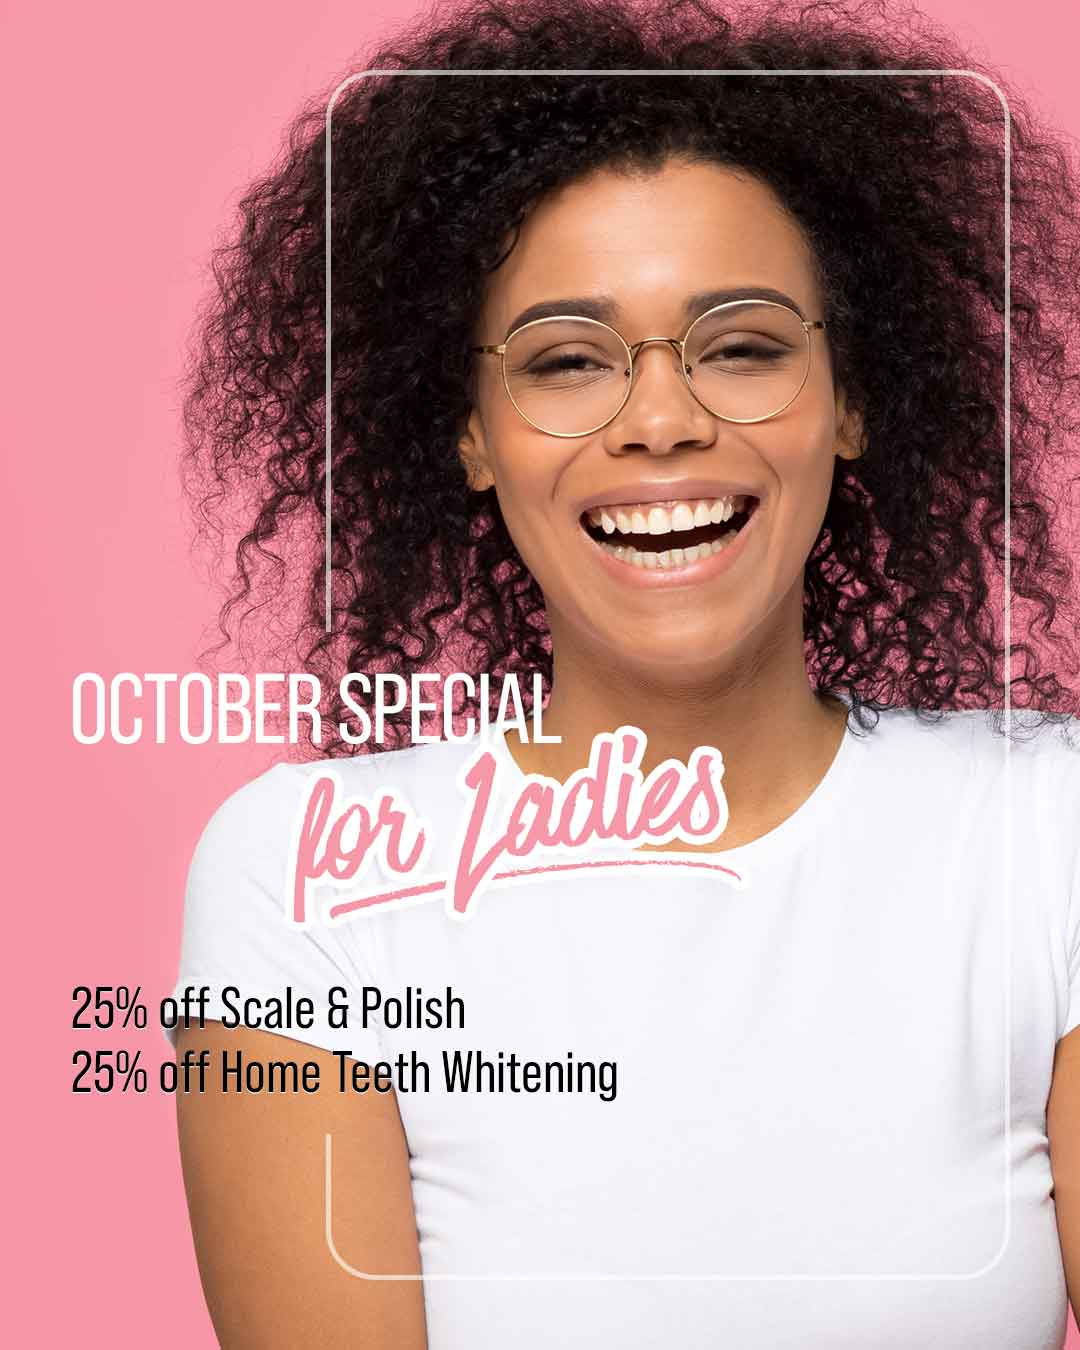 October Special for Ladies